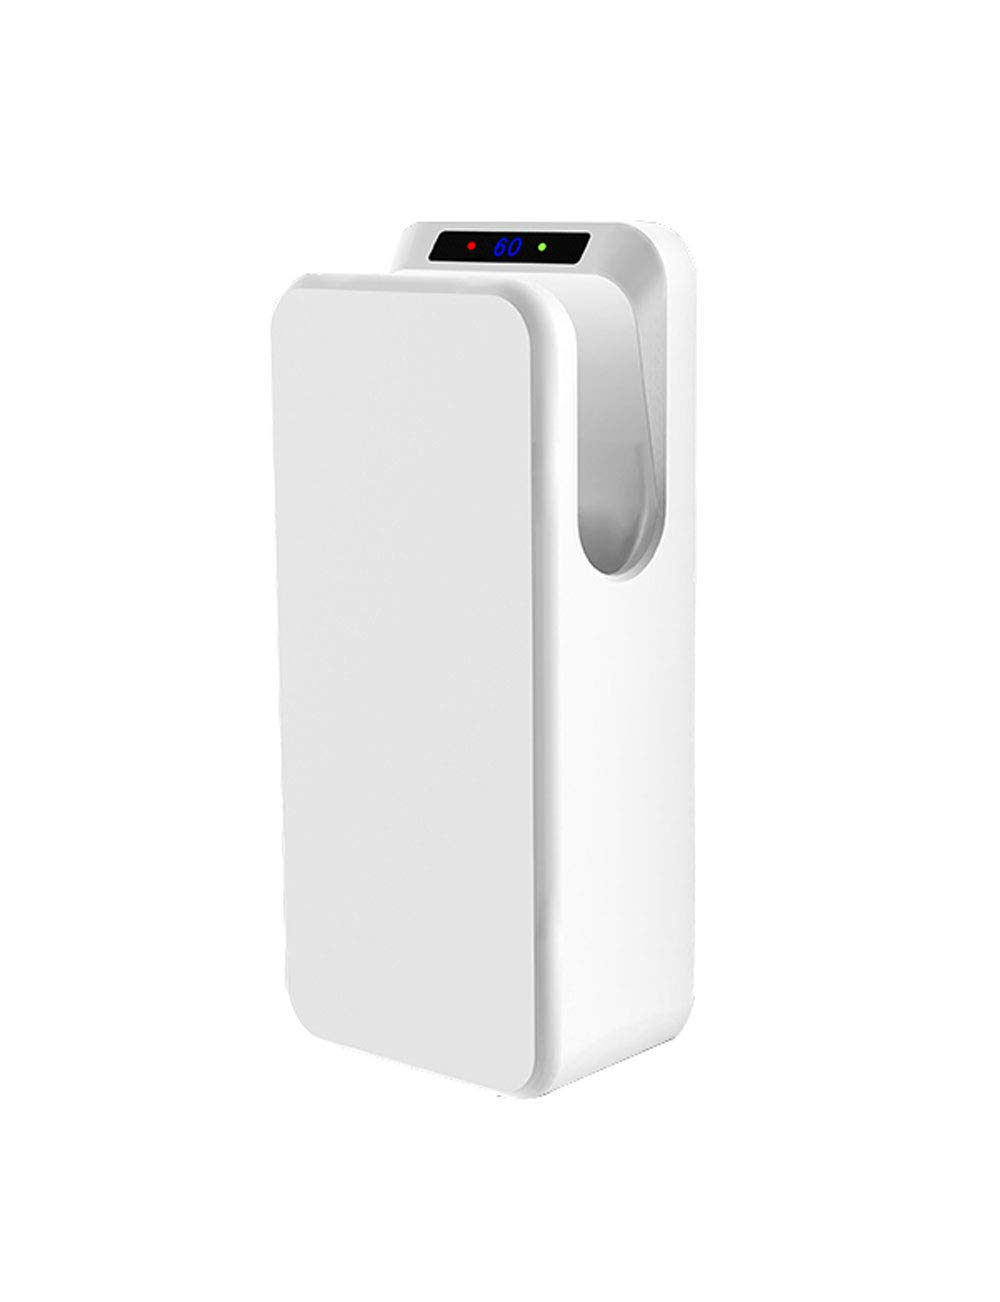 41sYGr1EvNL - Double-sided Jet Smart Hand Dryer, Wall-mounted, High-speed Powerful, No Noise, Energy Efficient, with UV Germicidal…